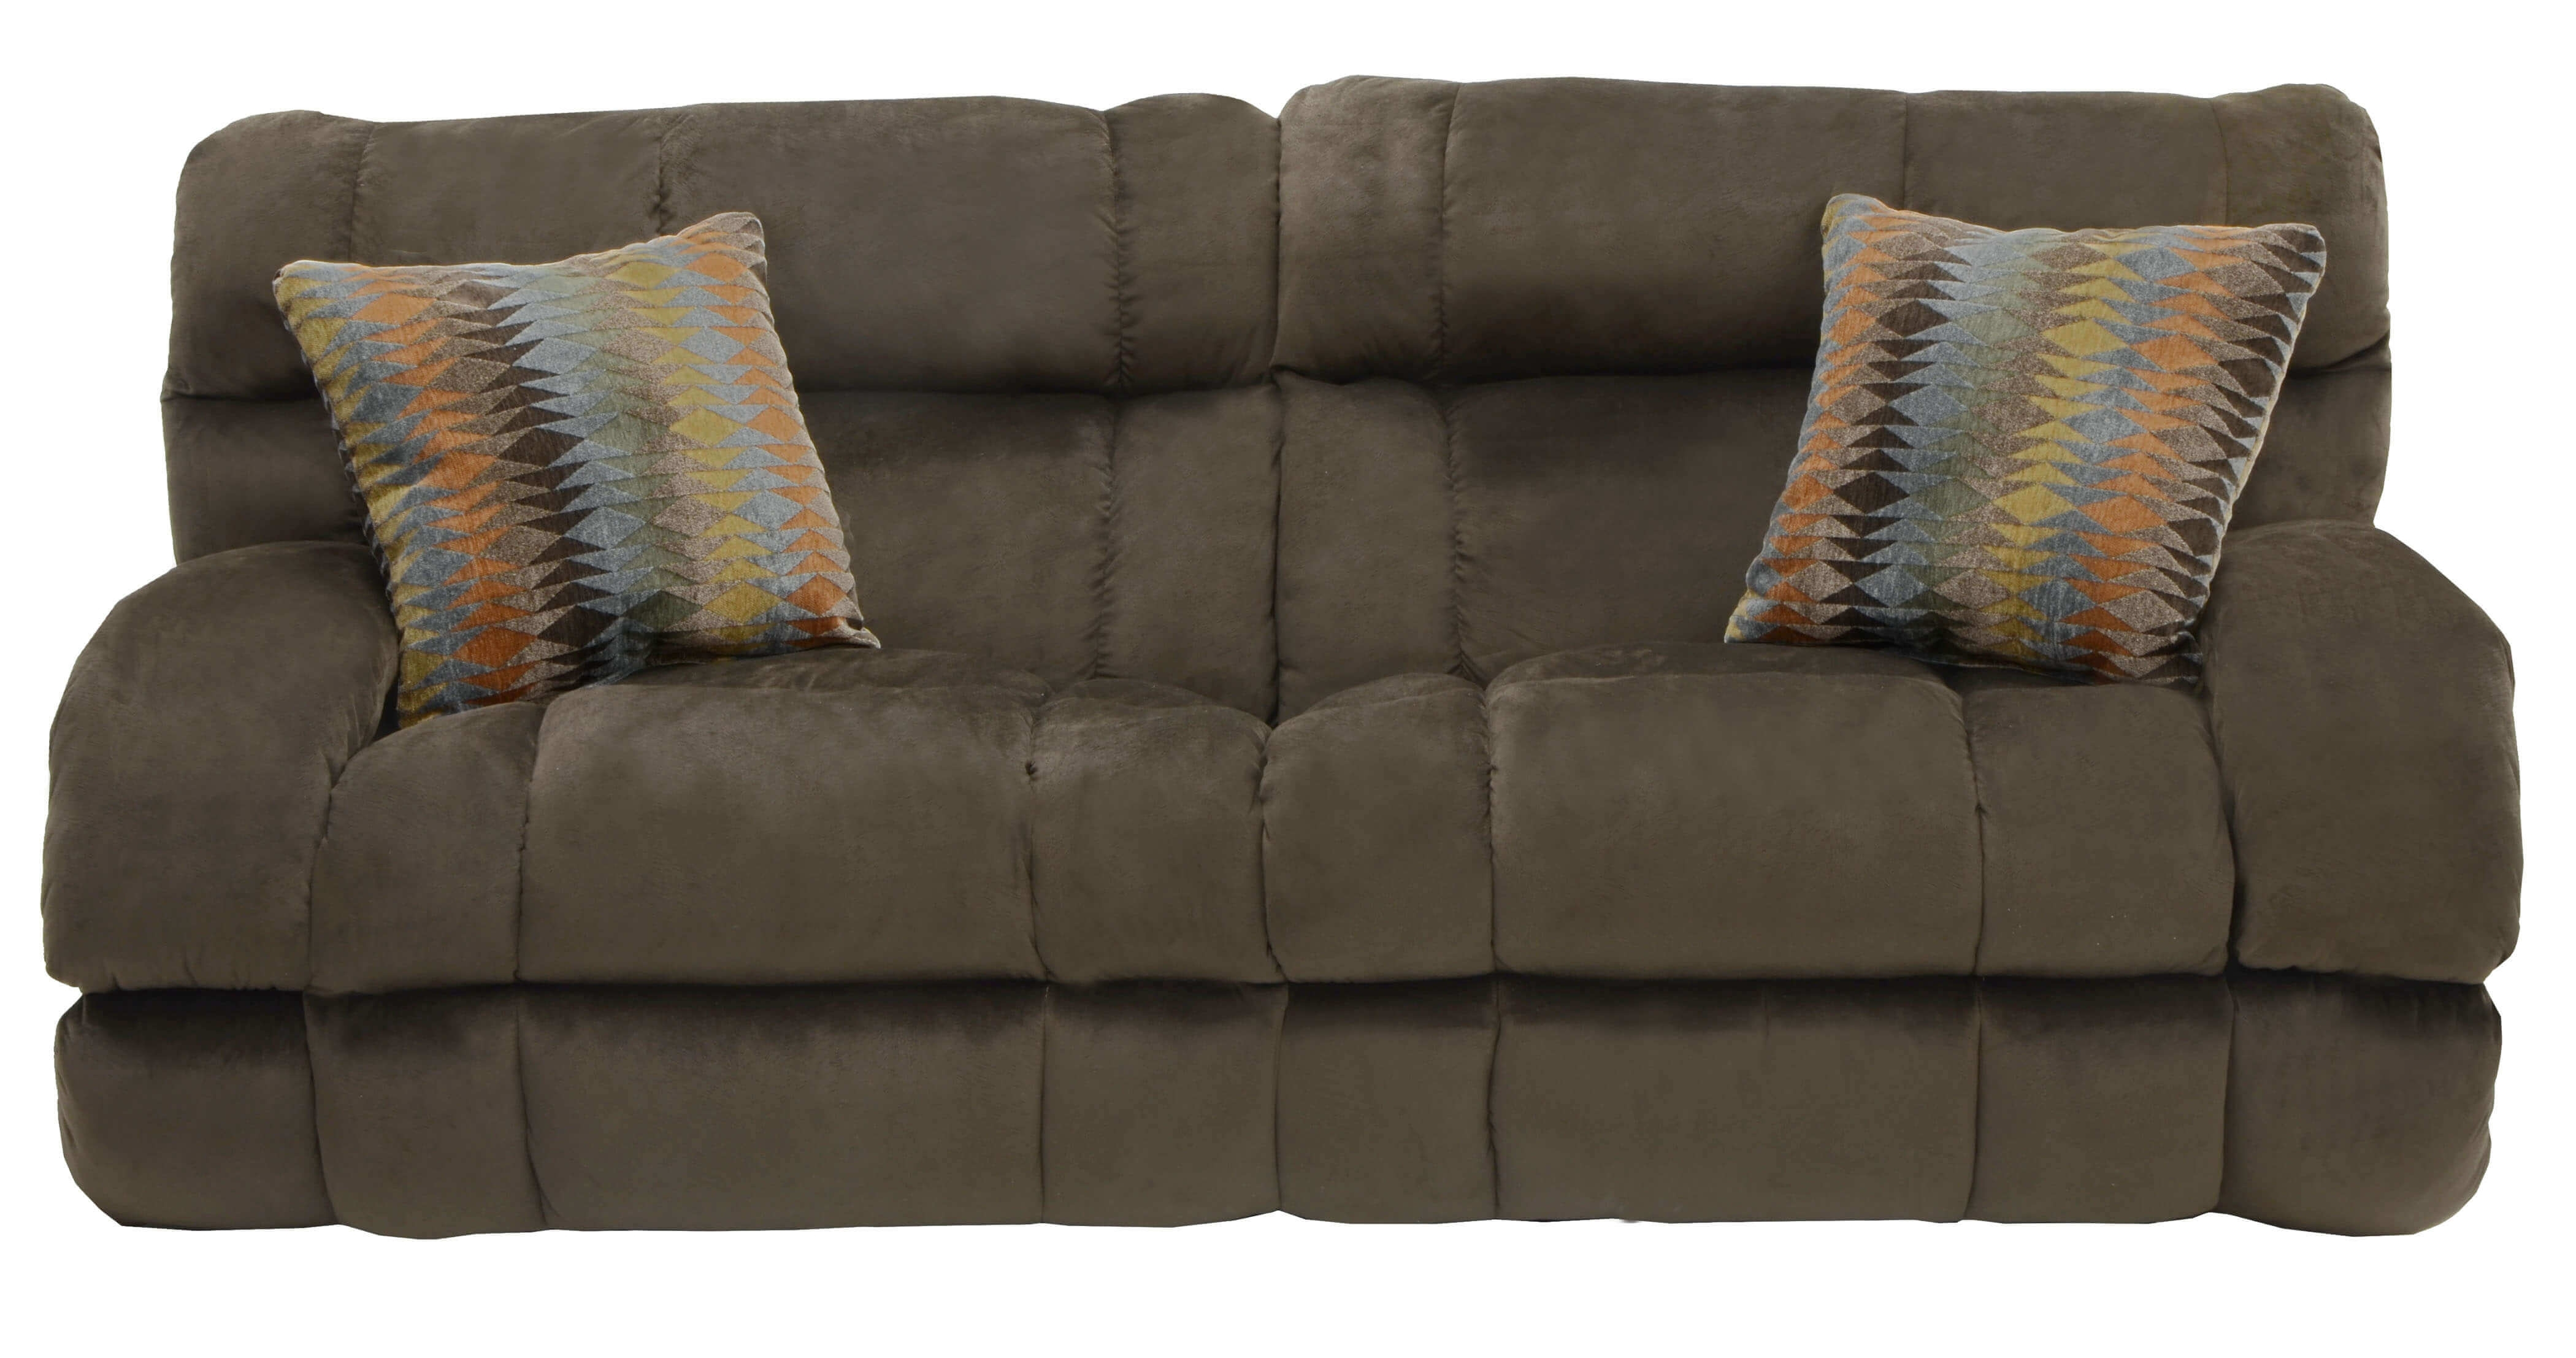 Catnapper Siesta Reclining Sofa | Delano's Furniture And Mattress With Delano Smoke 3 Piece Sectionals (View 16 of 25)